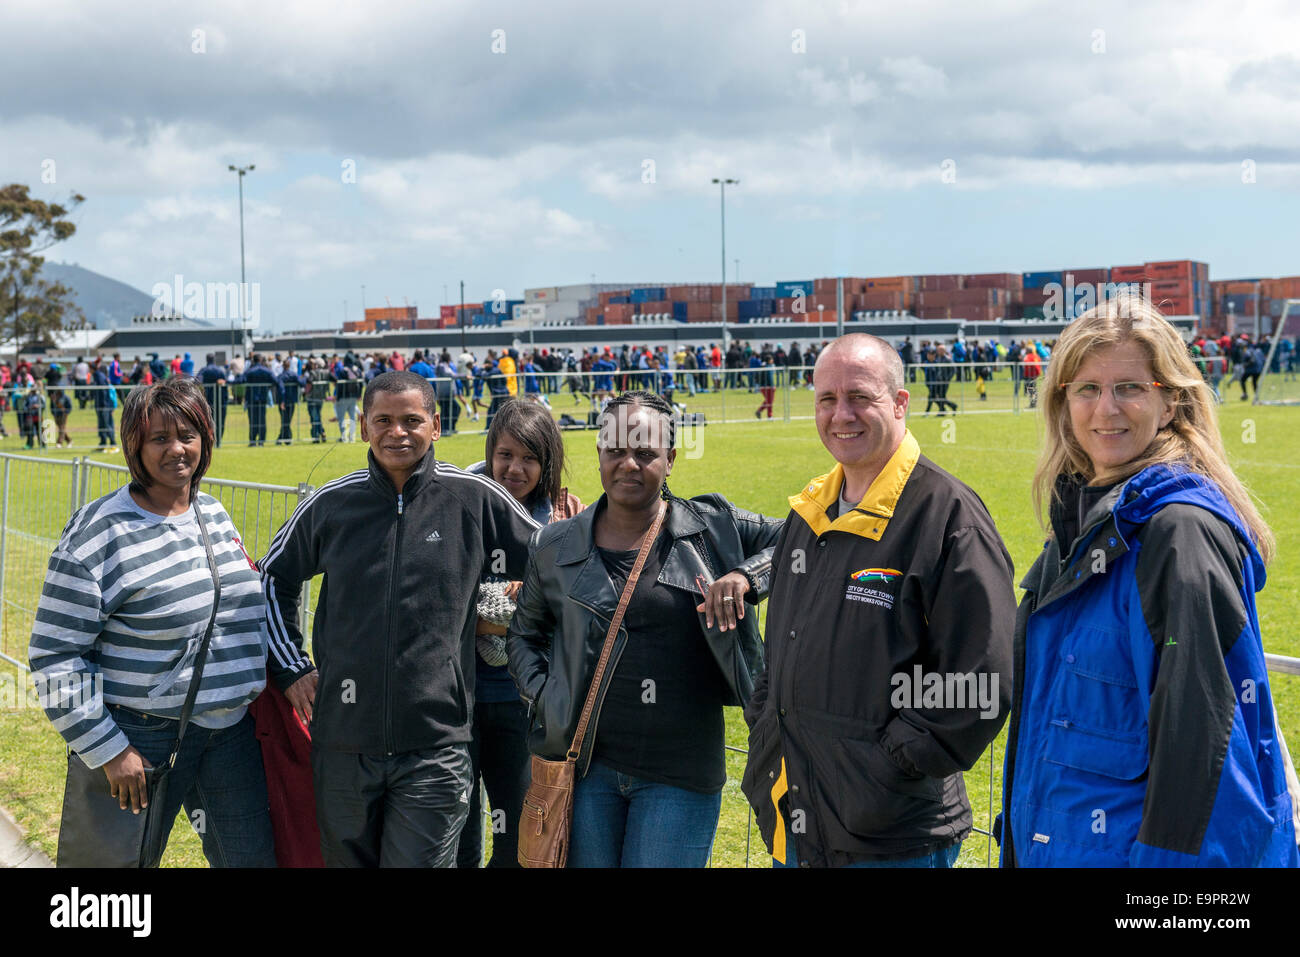 Parents of junior football players posing for a photo, Cape Town, South Africa - Stock Image